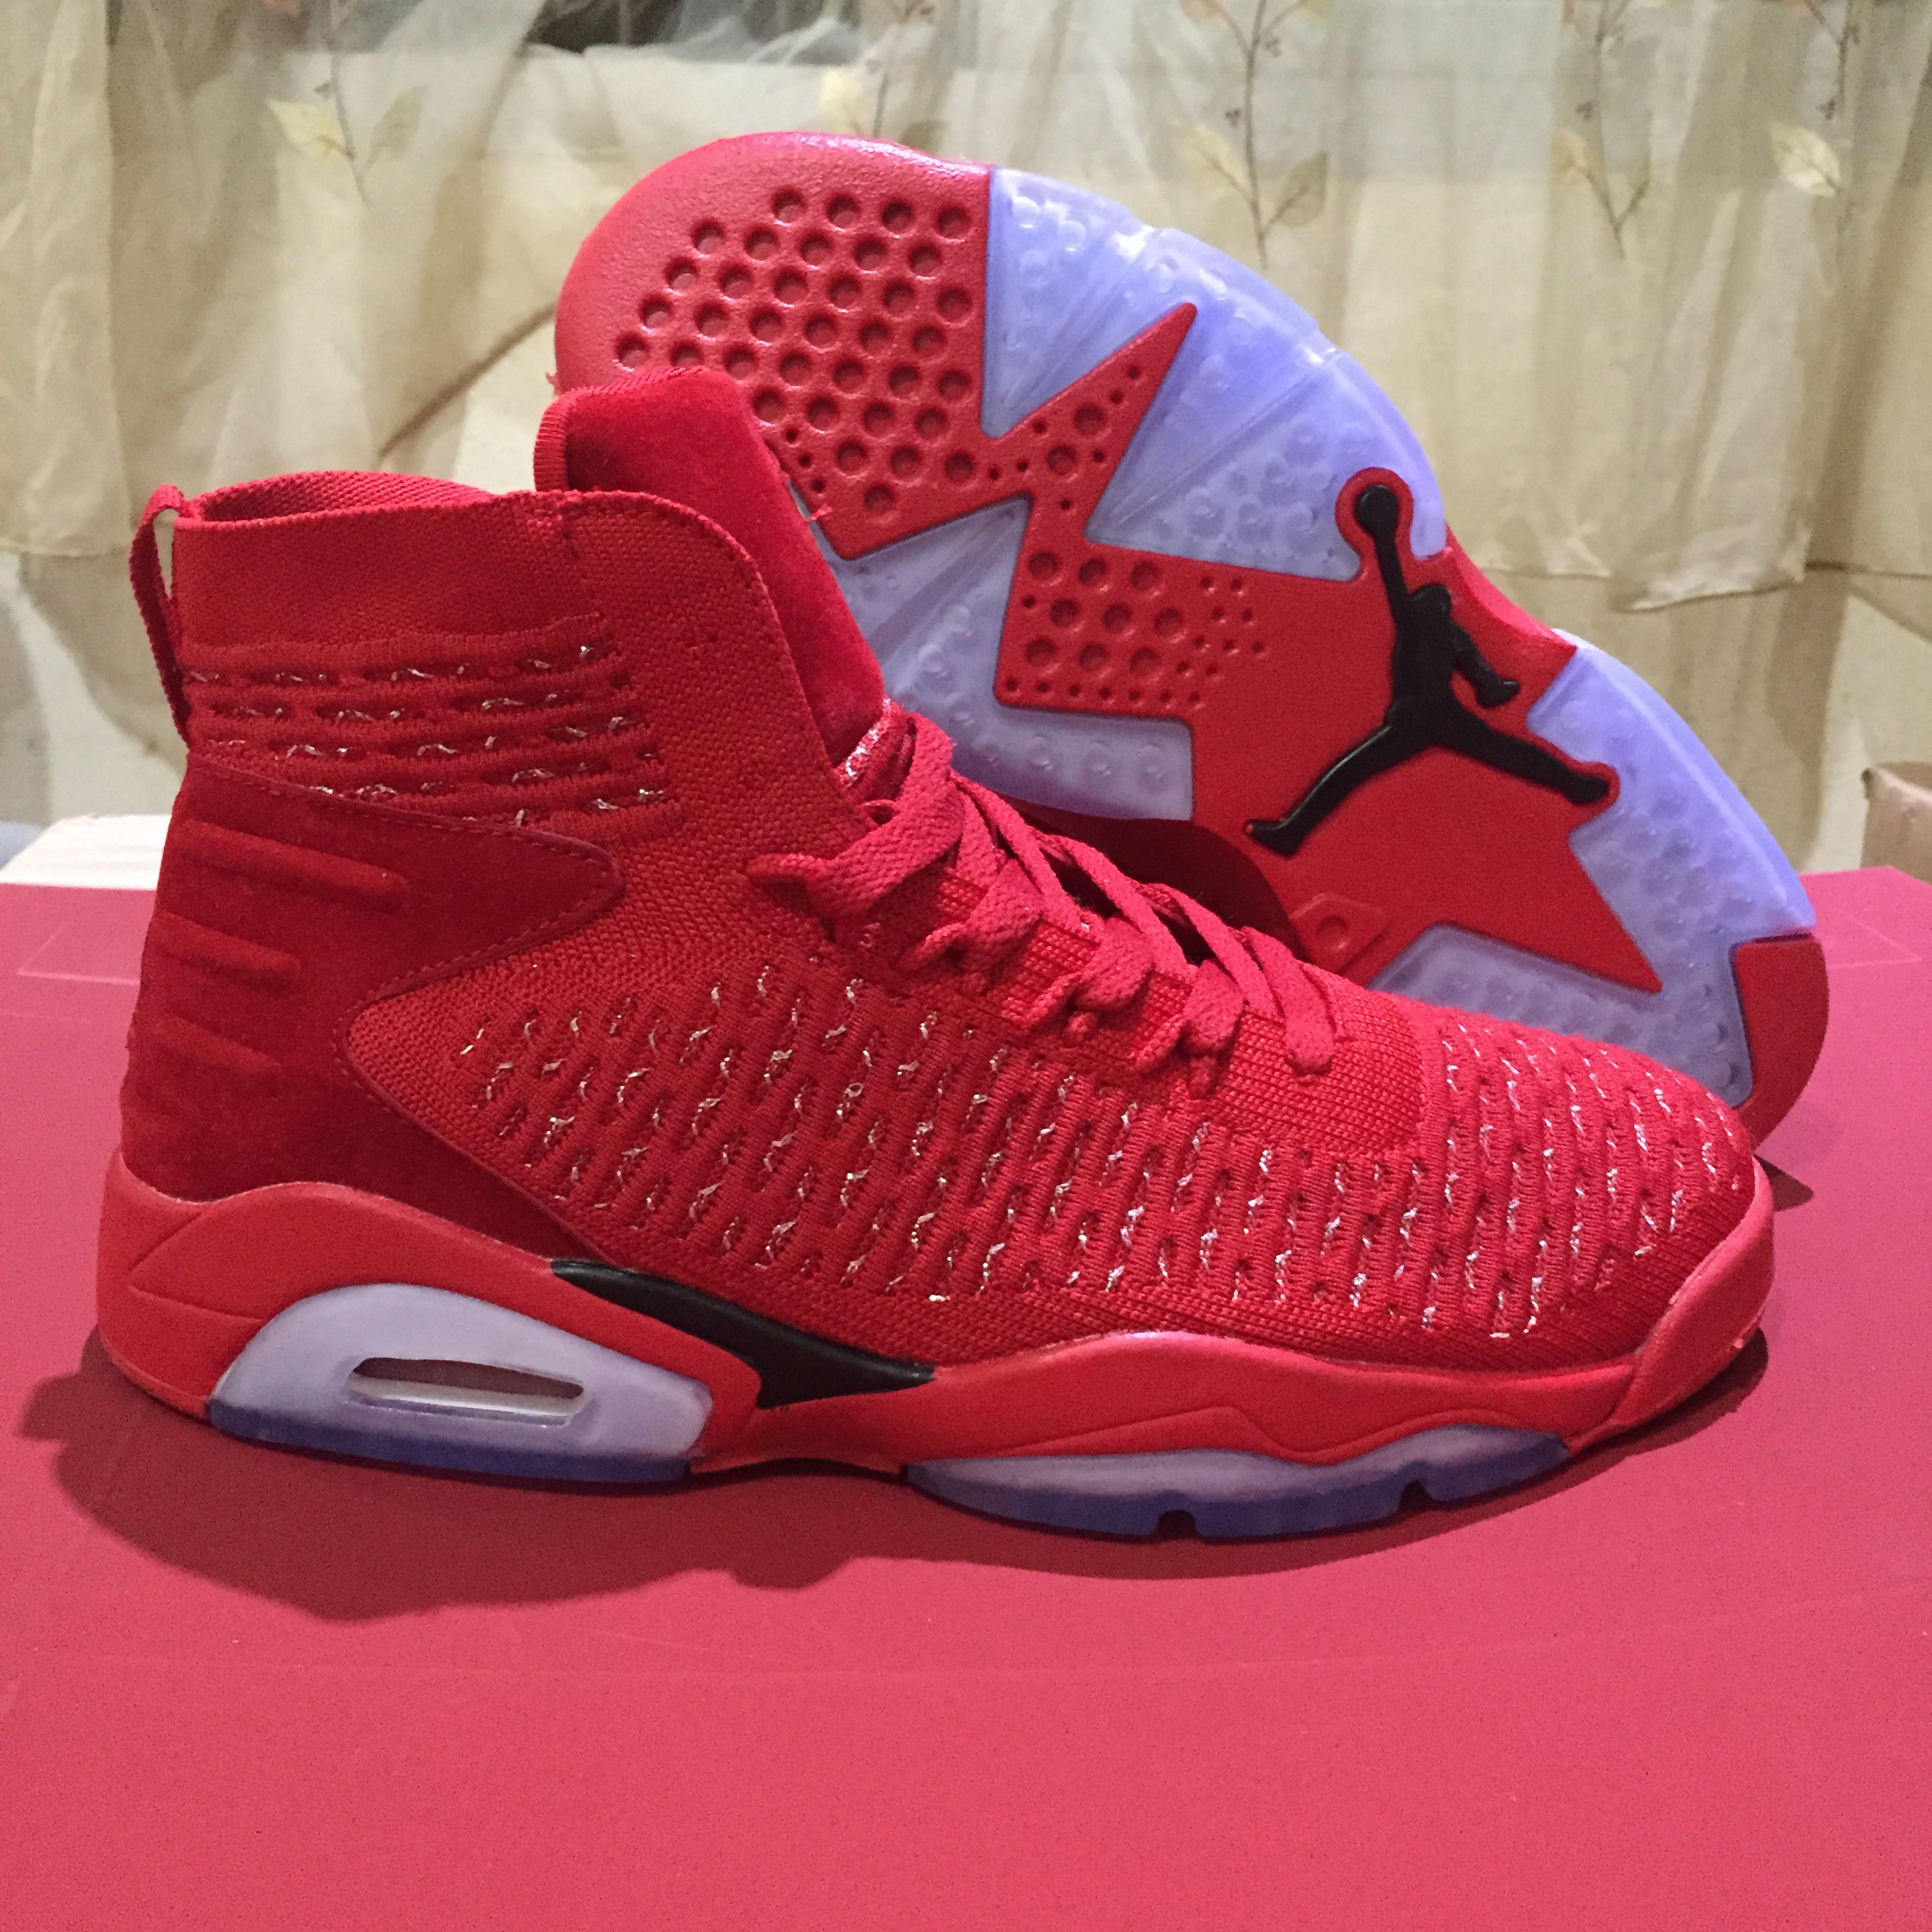 separation shoes f2d9d e1aa5 Air Jordan 6 Retro Flyknit Elevation 23 Red 2018 Mens Air Jordans Retro 6s  Basketball Shoes XY244 - Getfashionsstore.